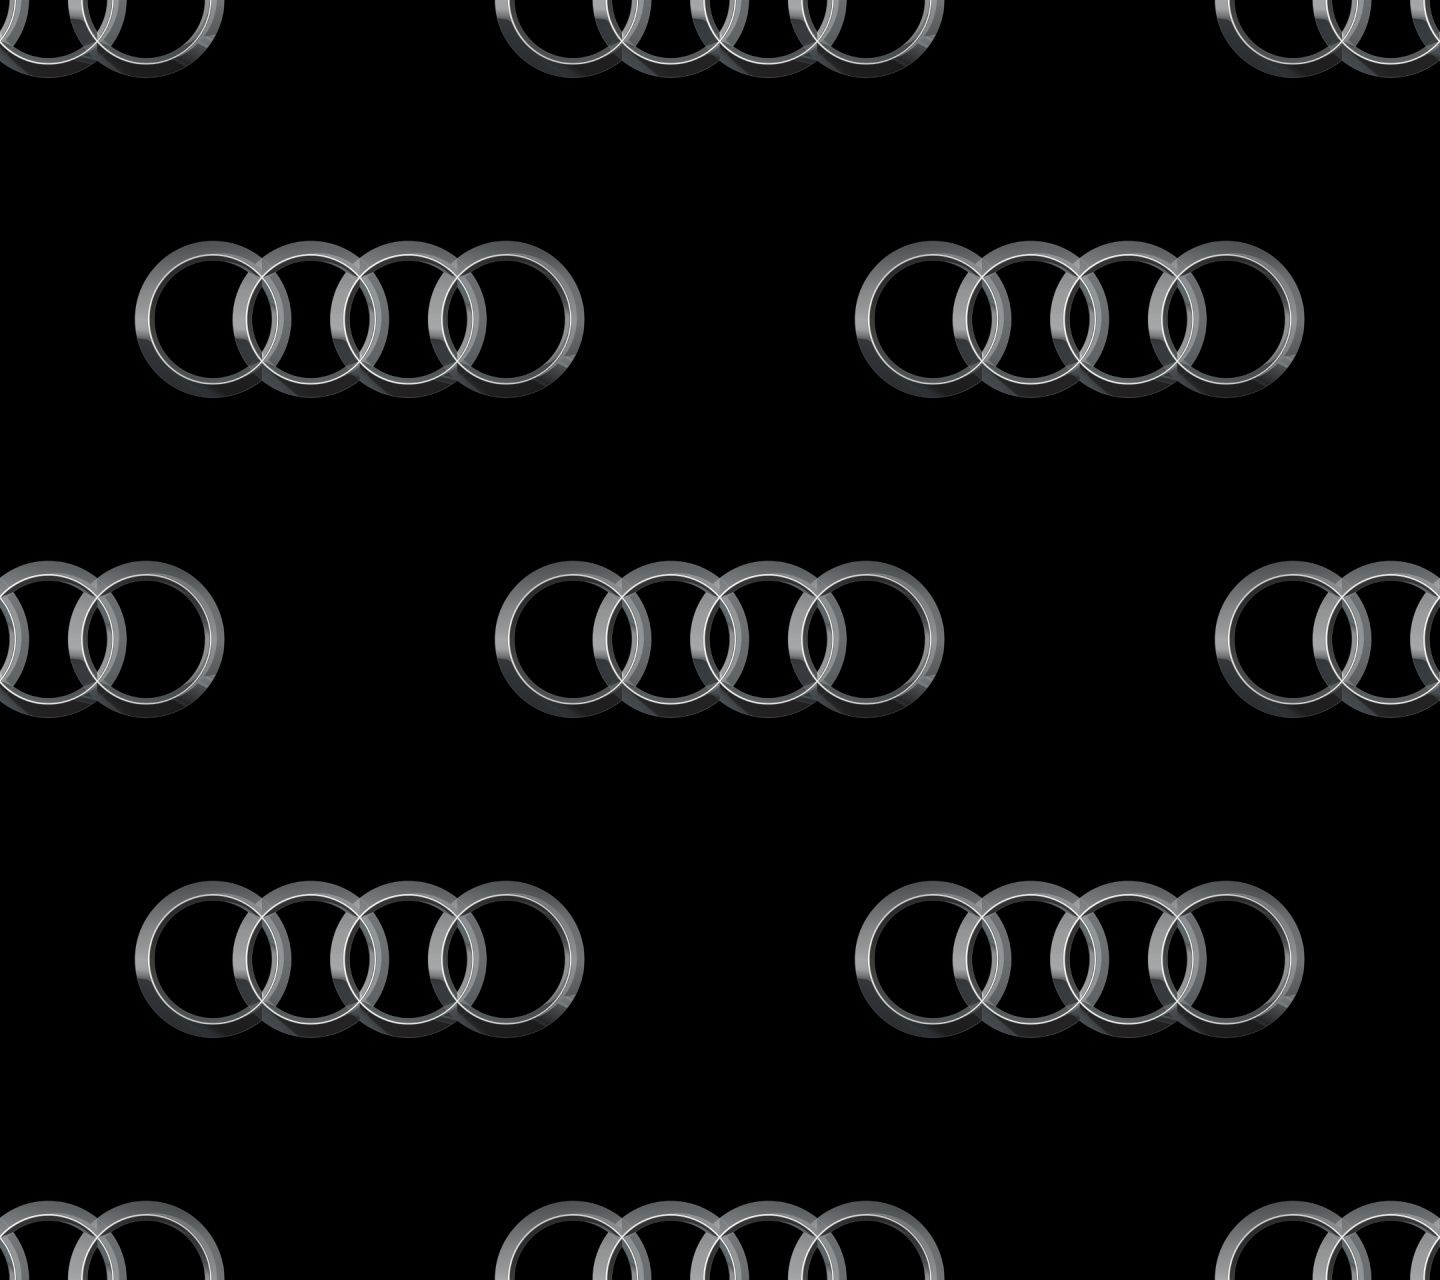 1440x1280 mobile phone wallpapers download 71 1440x1280 download audi logo1440x12801280x1440freehotmobile phone wallpapers www voltagebd Image collections